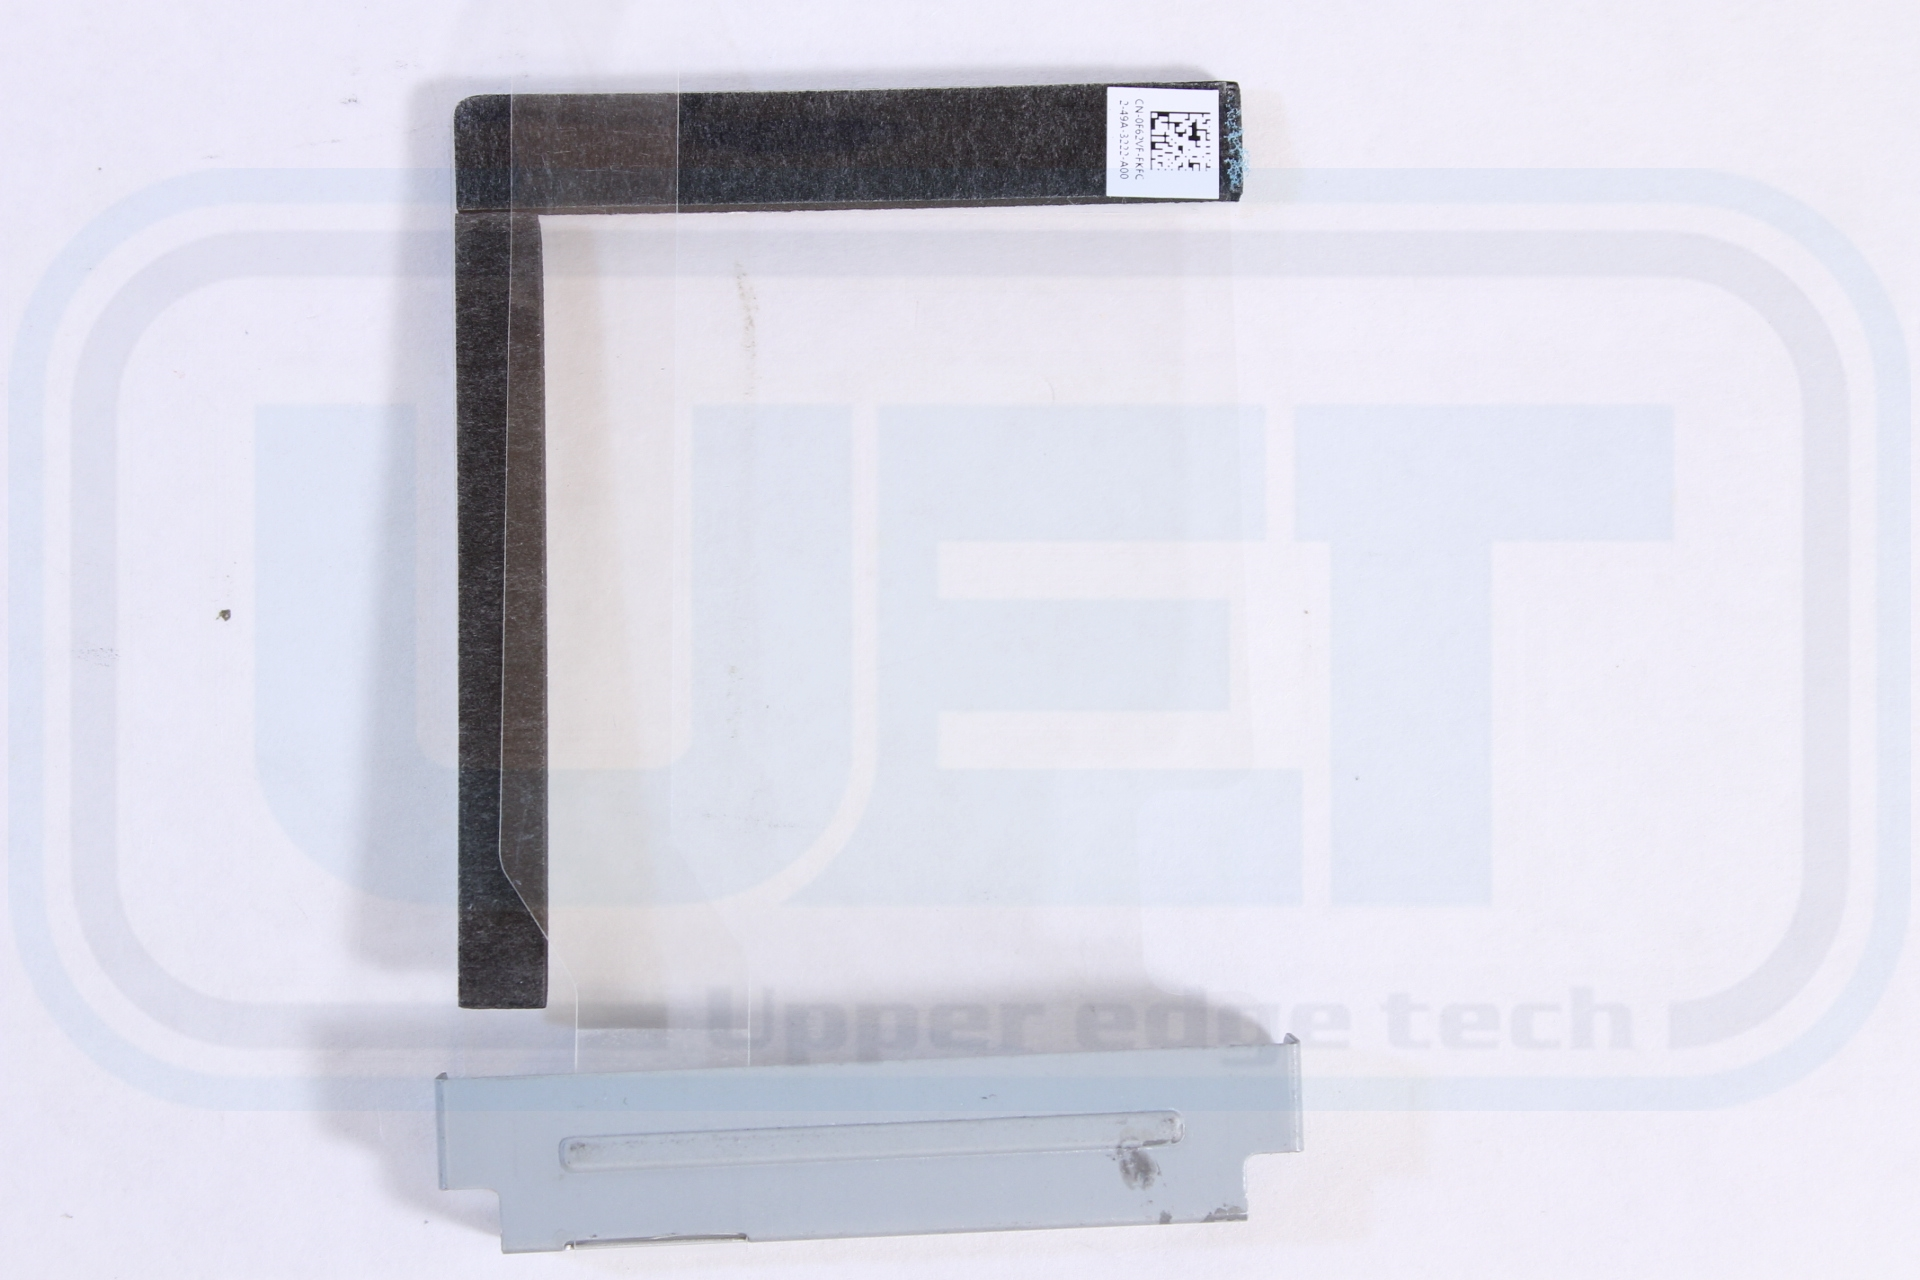 "Dell Inspiron 15.6/"" 3531 Original Laptop HDD Drive Caddy with Screws GLP*"